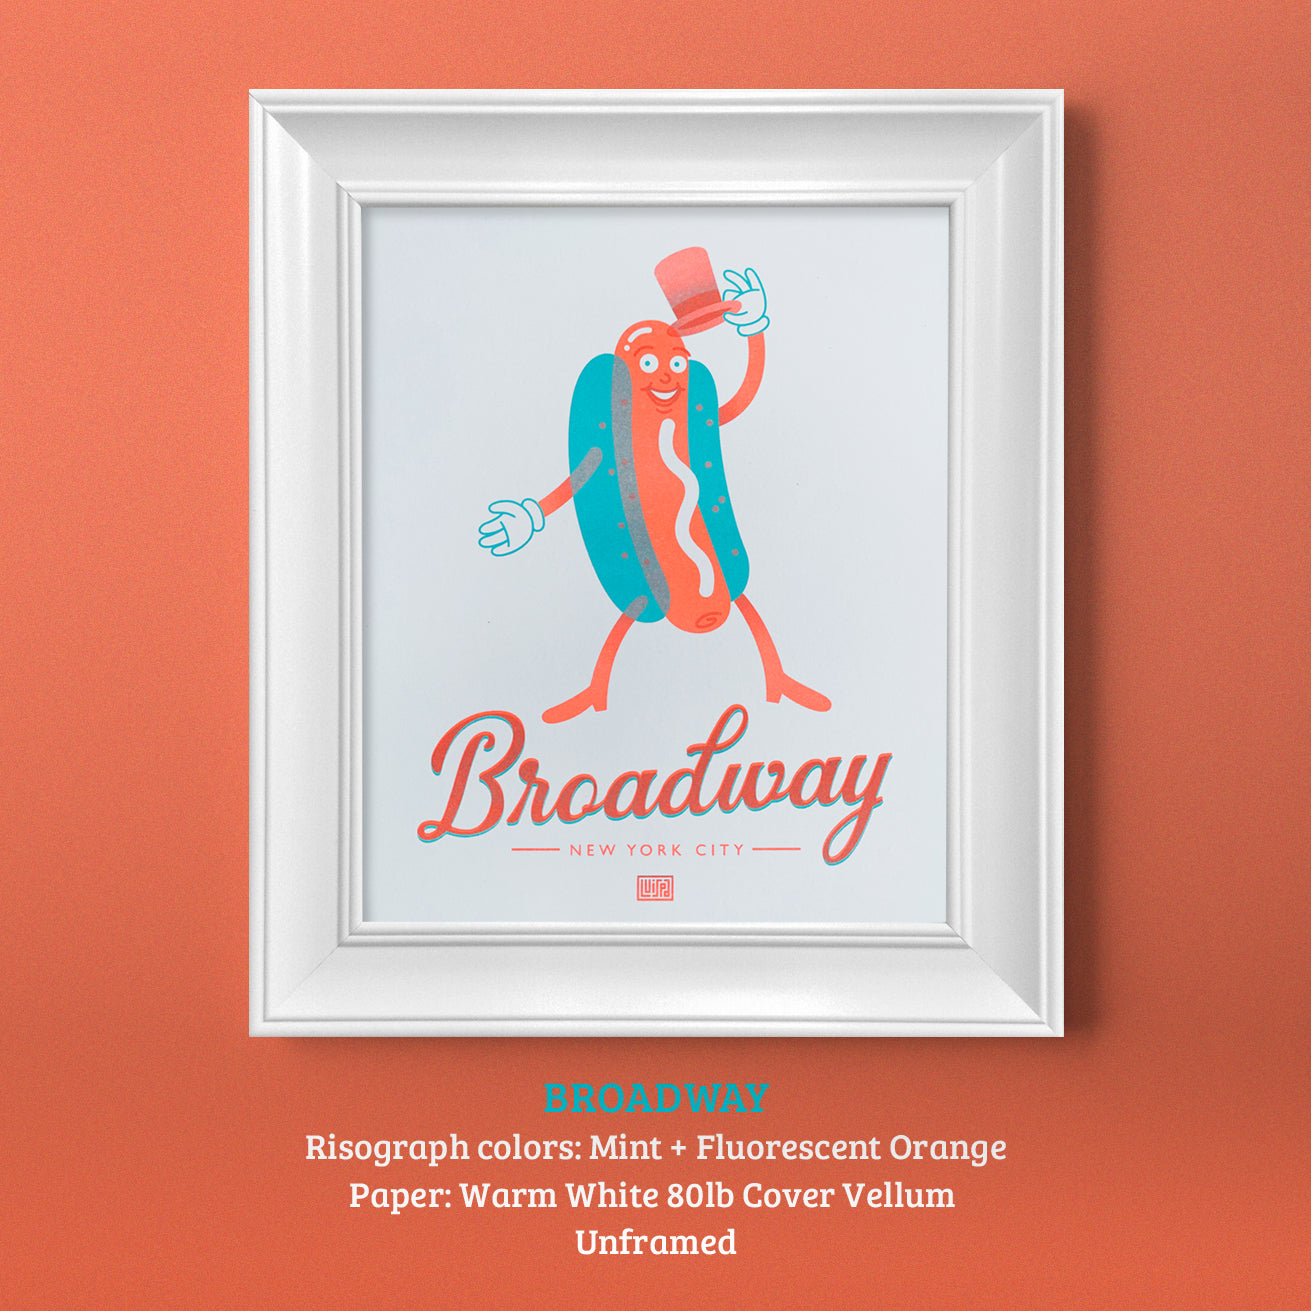 Broadway Risograph Print by Lulab